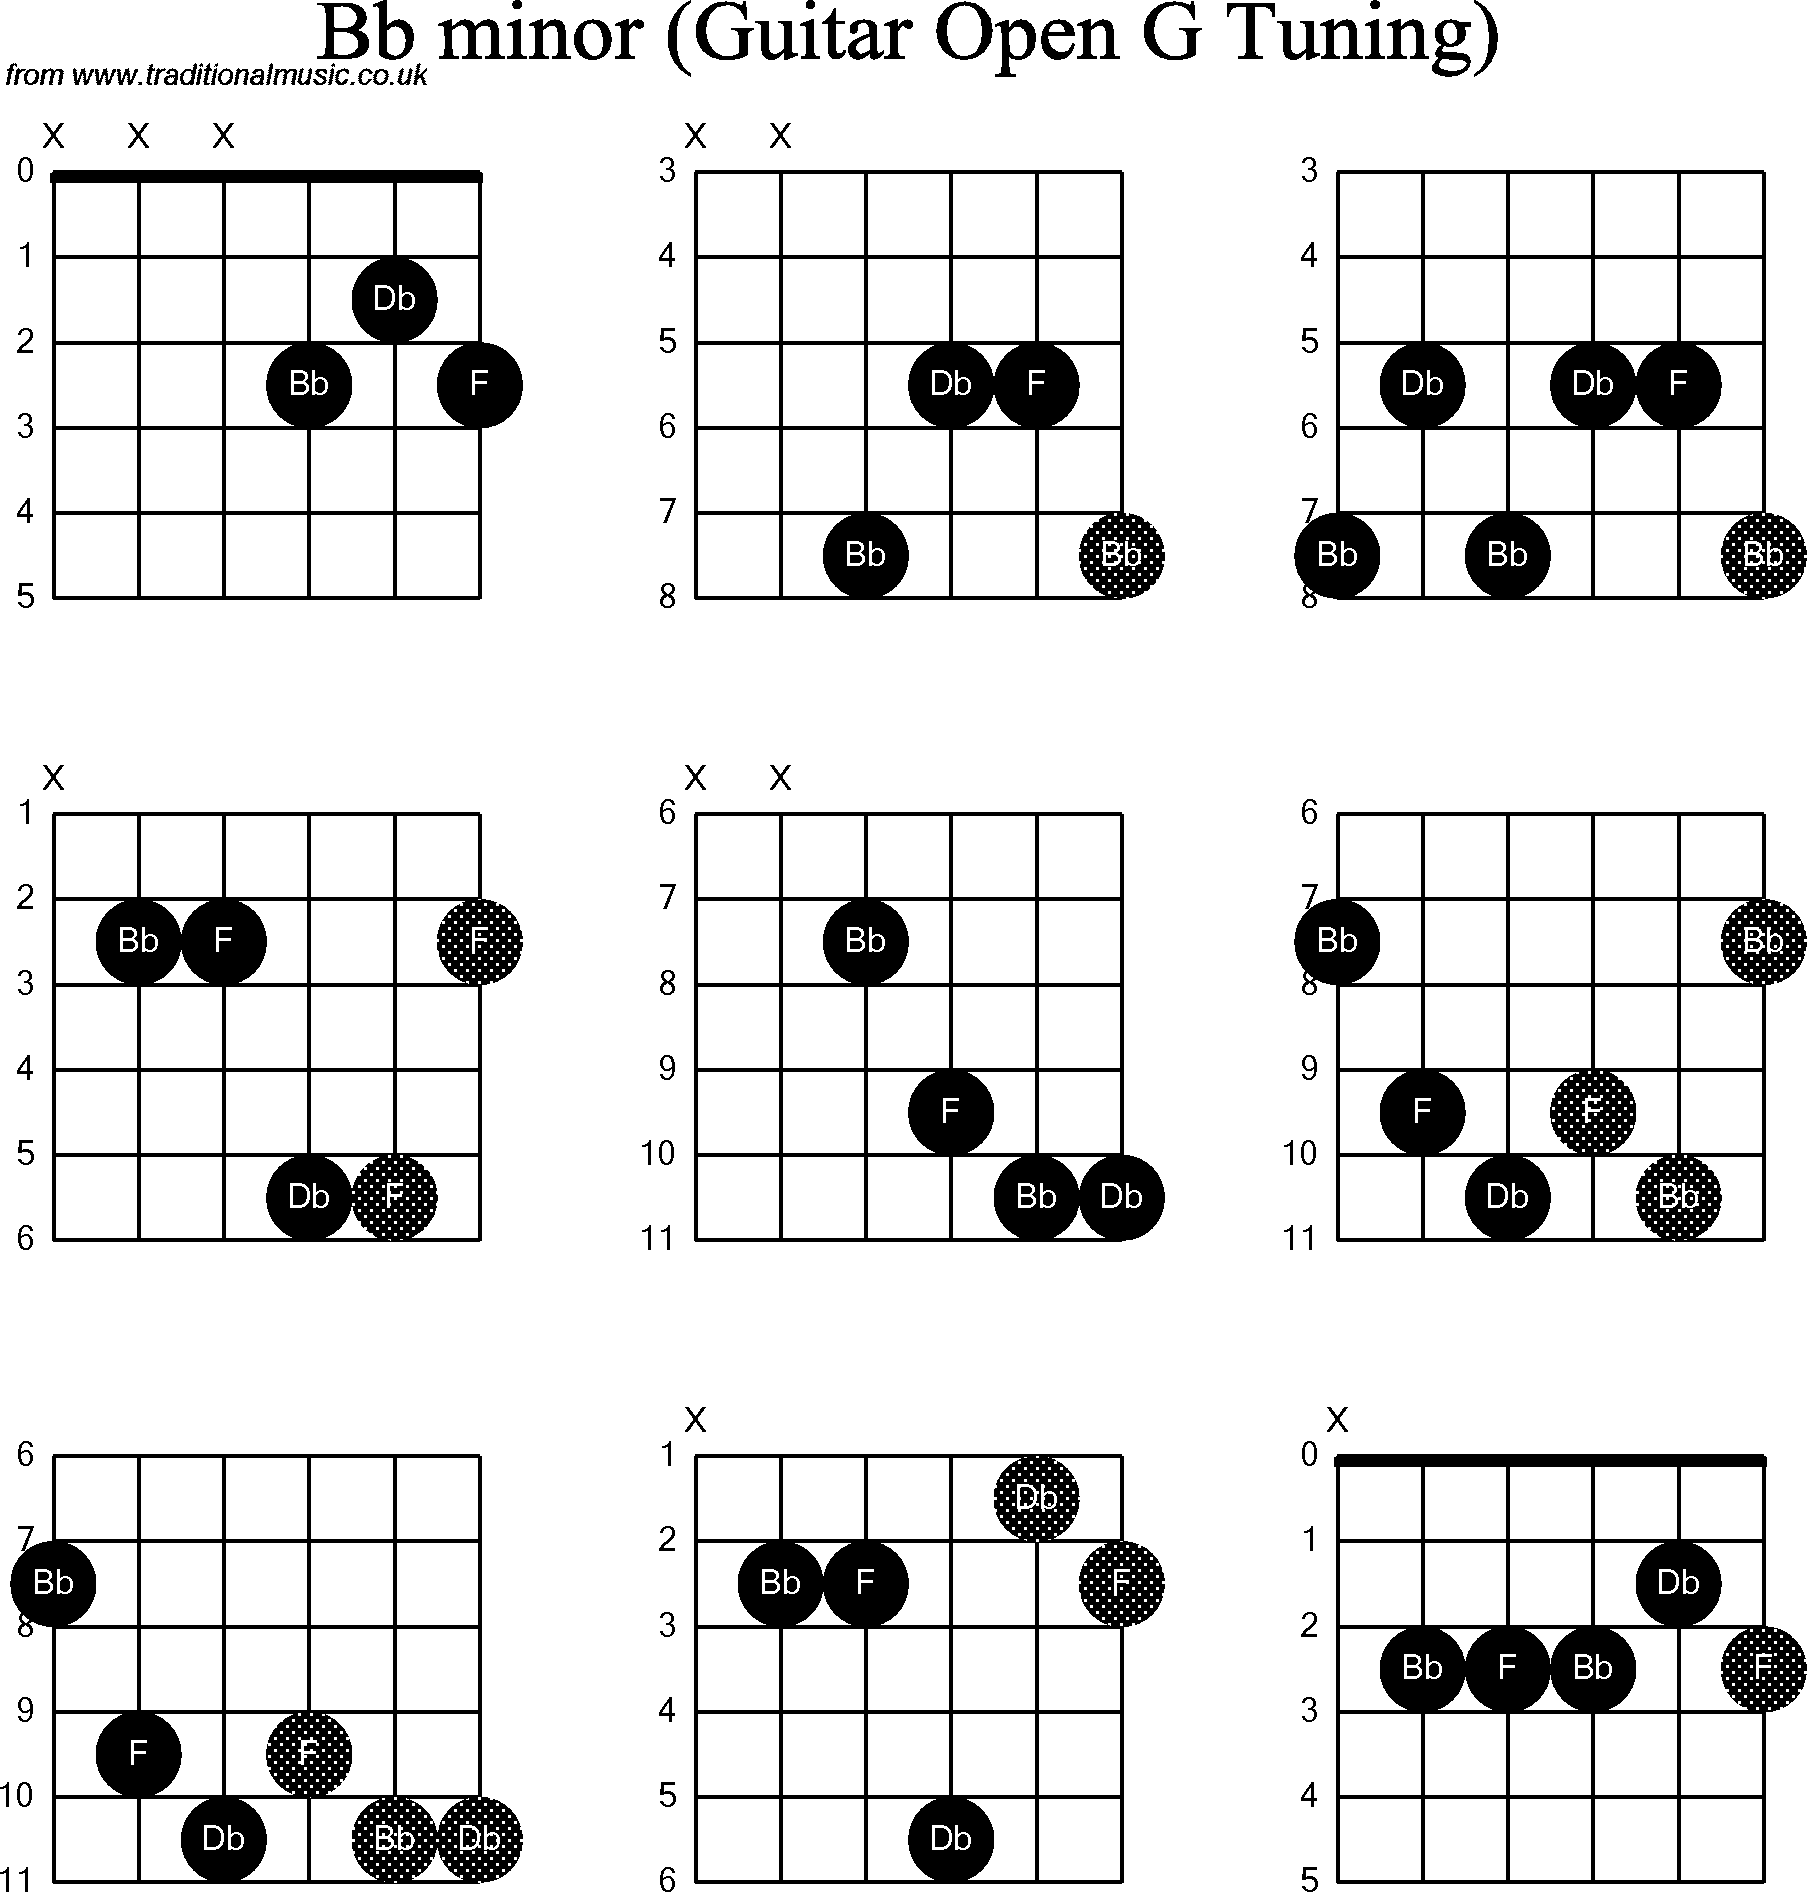 Chord diagrams for dobro bb minor chord diagrams for dobro bb minor hexwebz Image collections